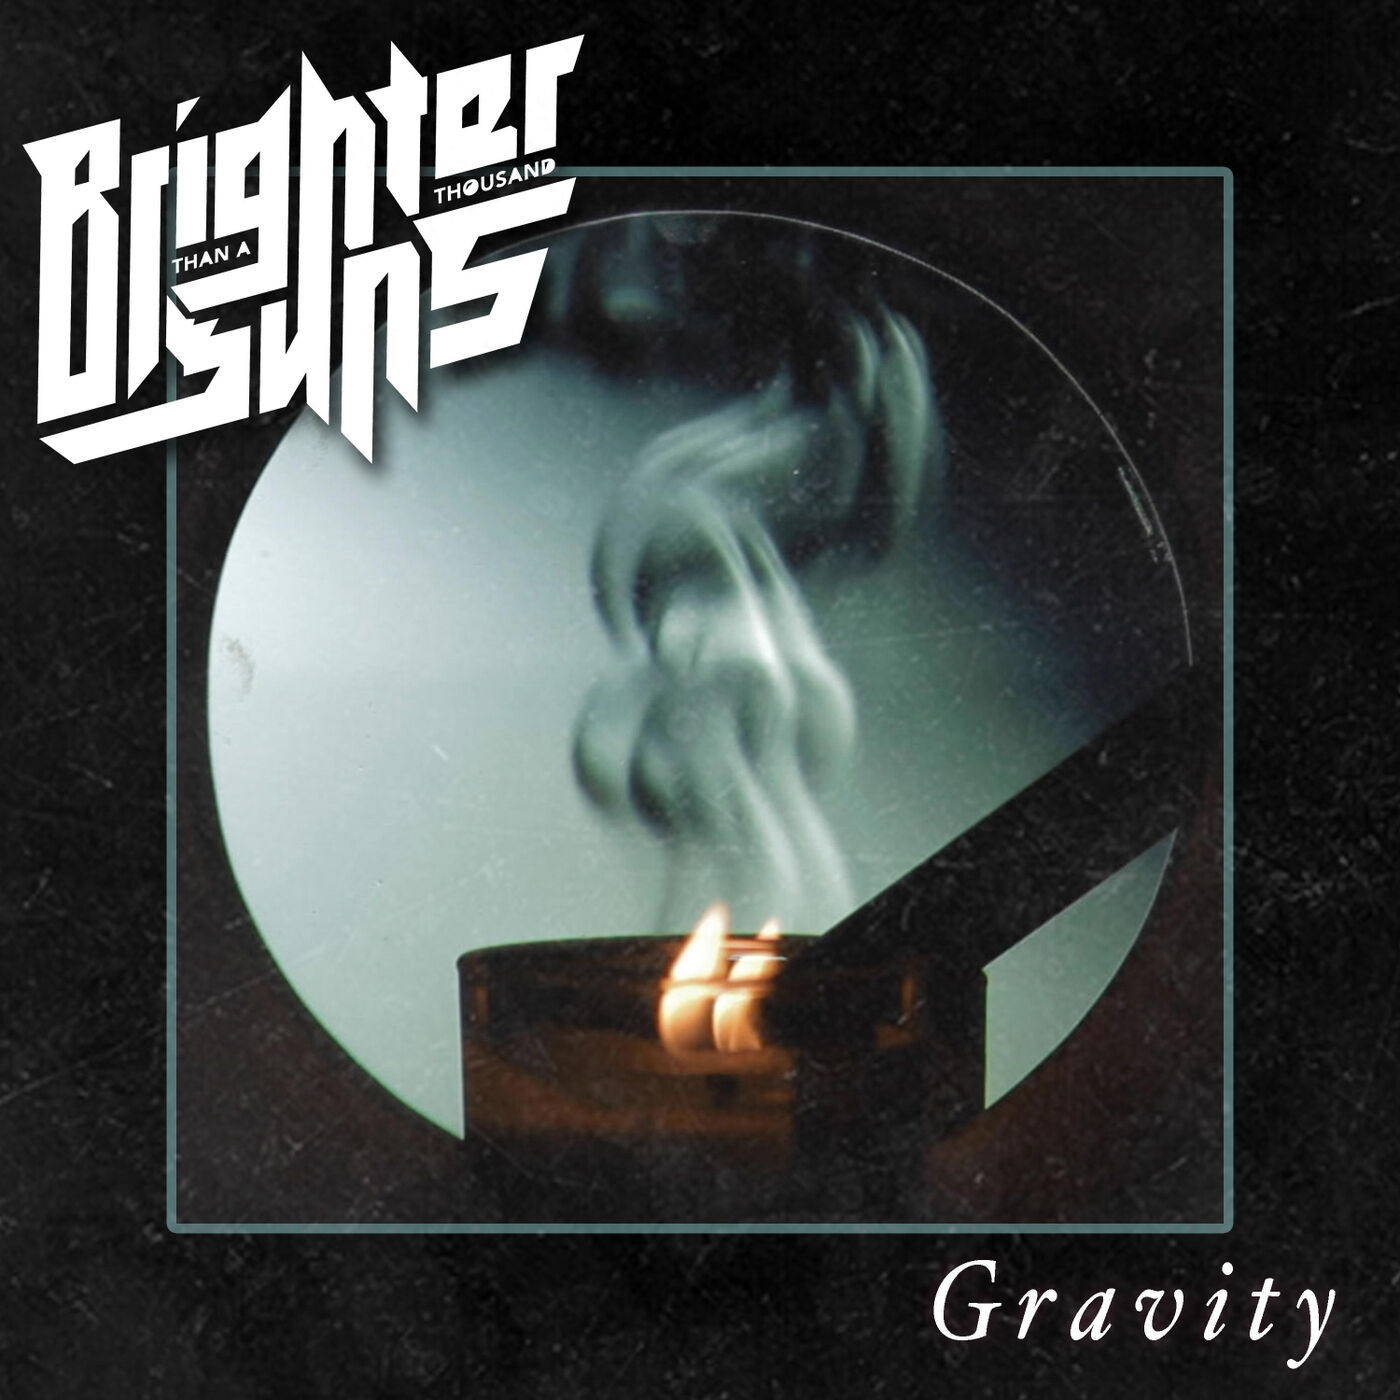 Brighter Than a Thousand Suns - Gravity [single] (2020)